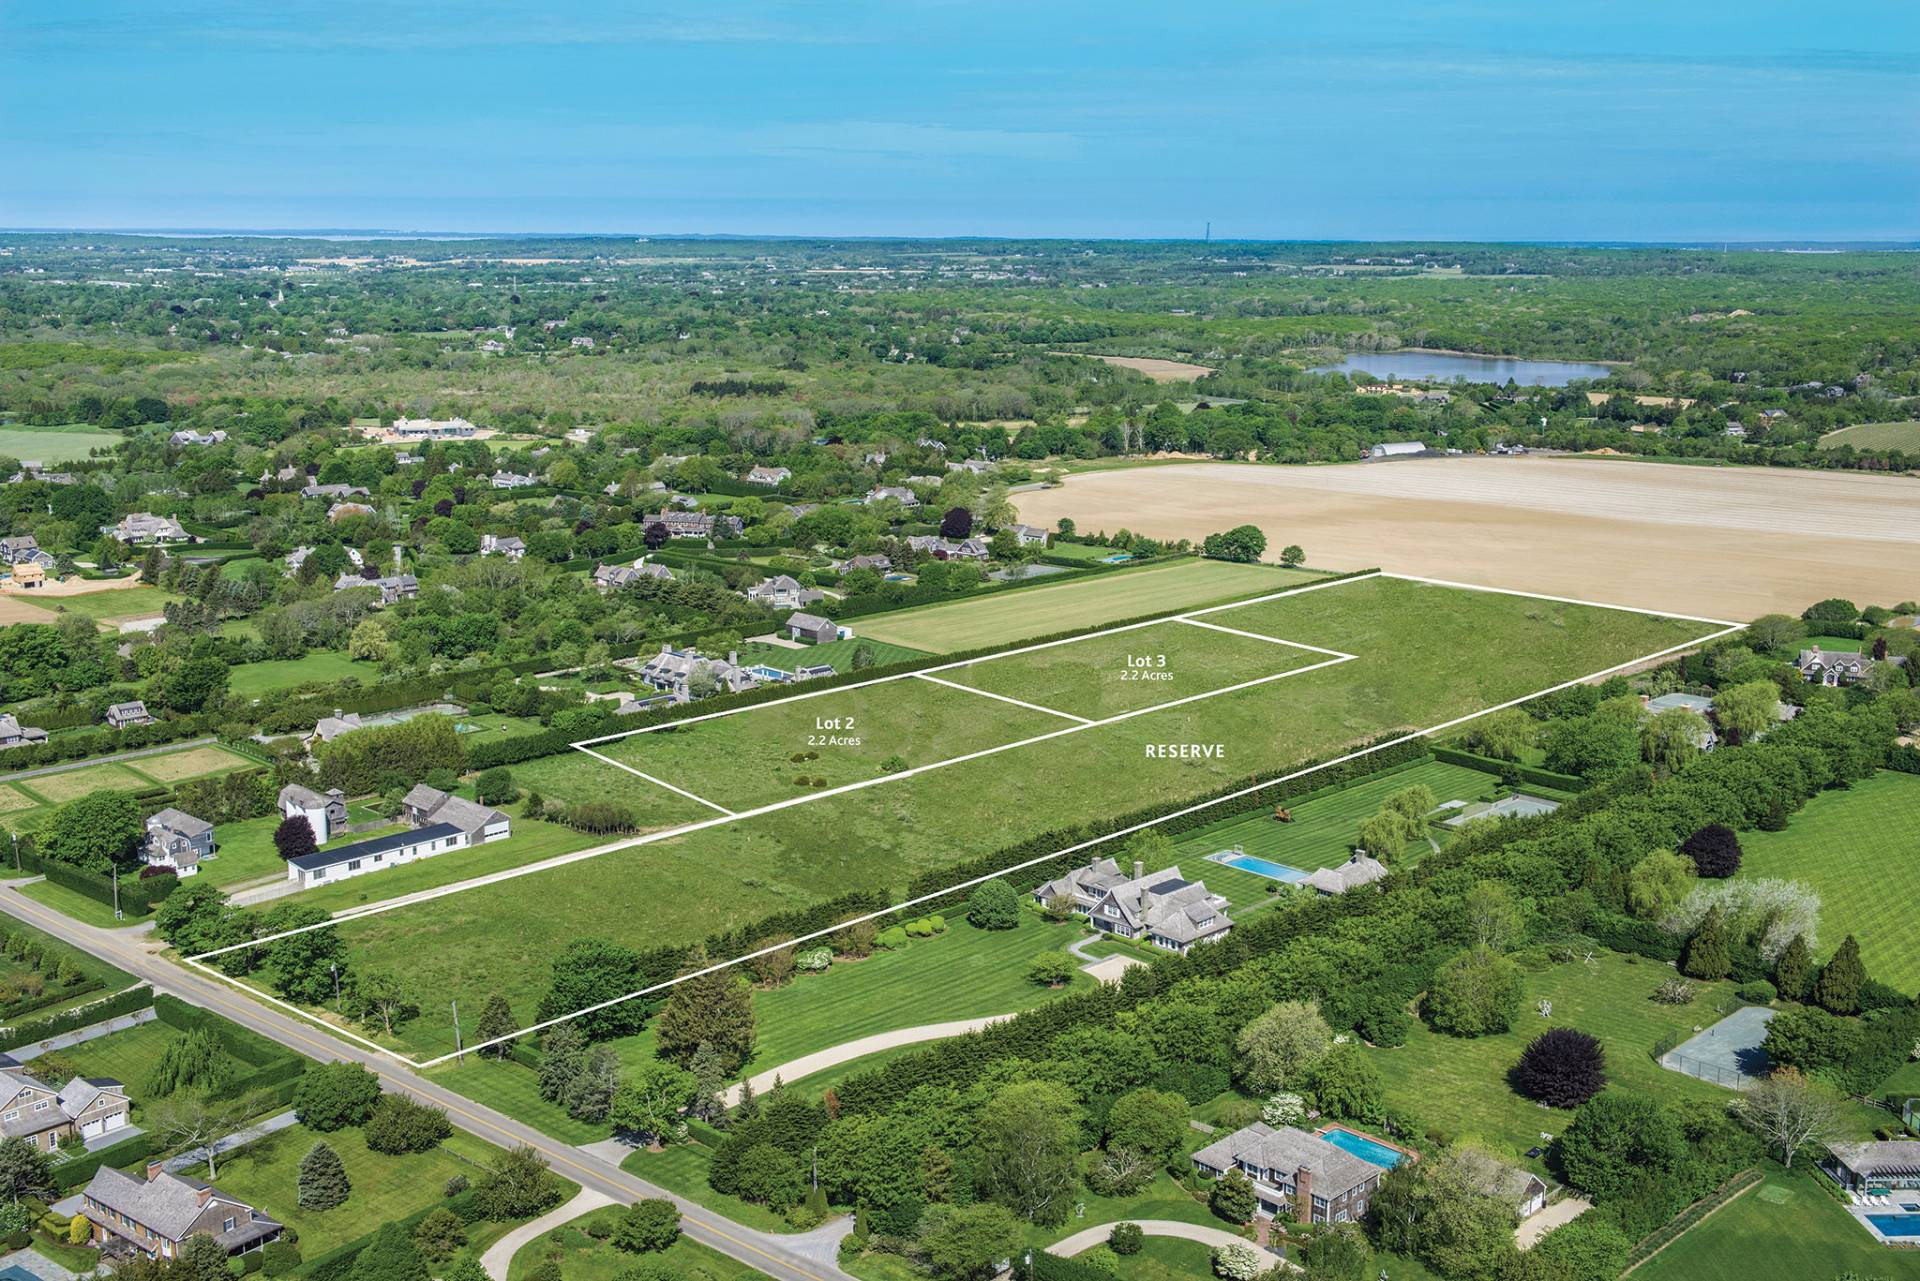 Land for Sale at The Land At Luna Farm 280 Parsonage Lane - Lot 2, Sagaponack, New York